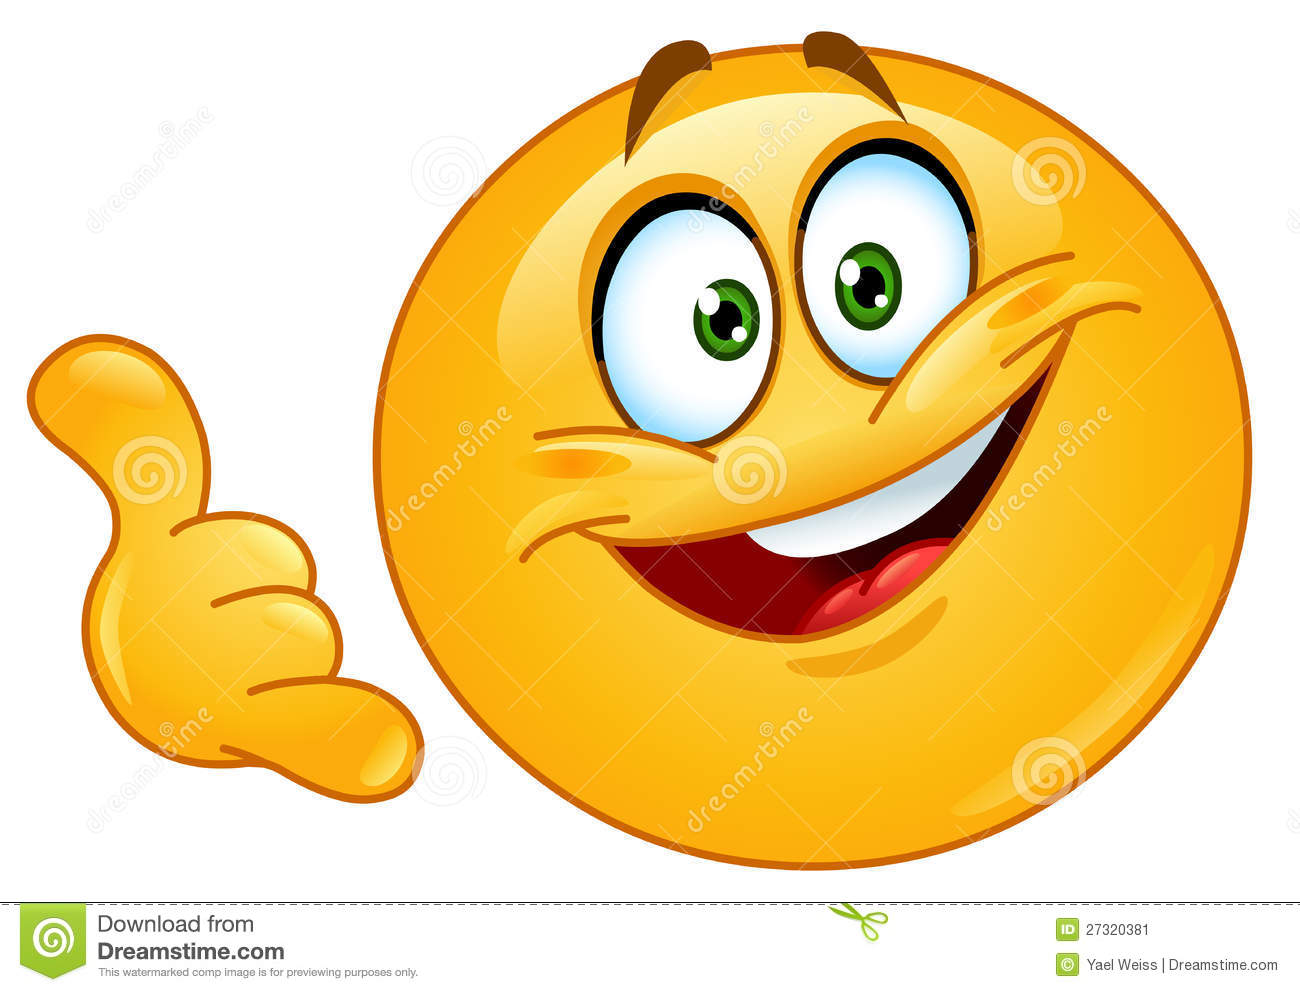 Call Me Emoticon Stock Image - Image: 27320381